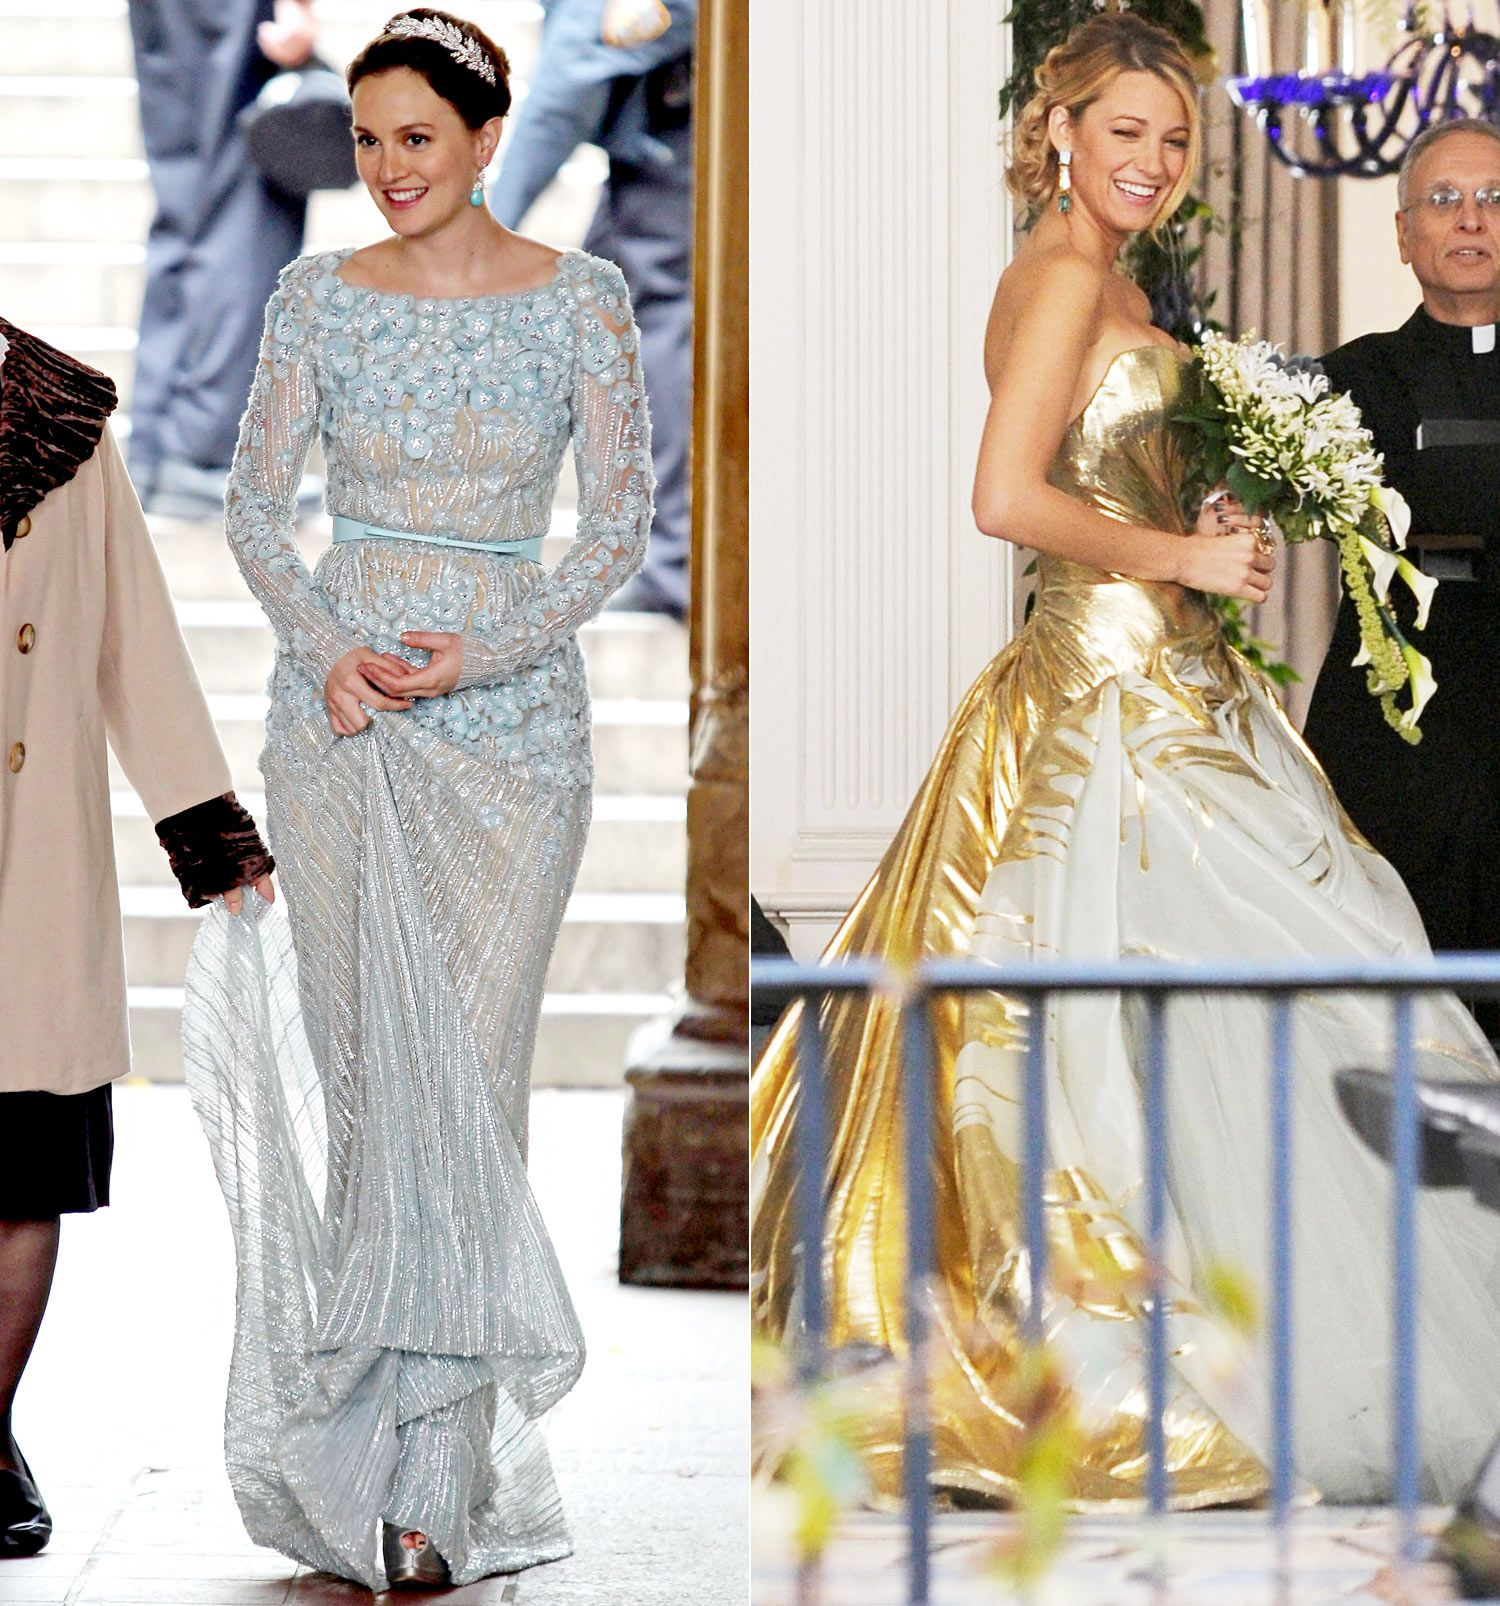 Who had the better gossip girl wedding dress blair or for Serena wedding dress gossip girl price